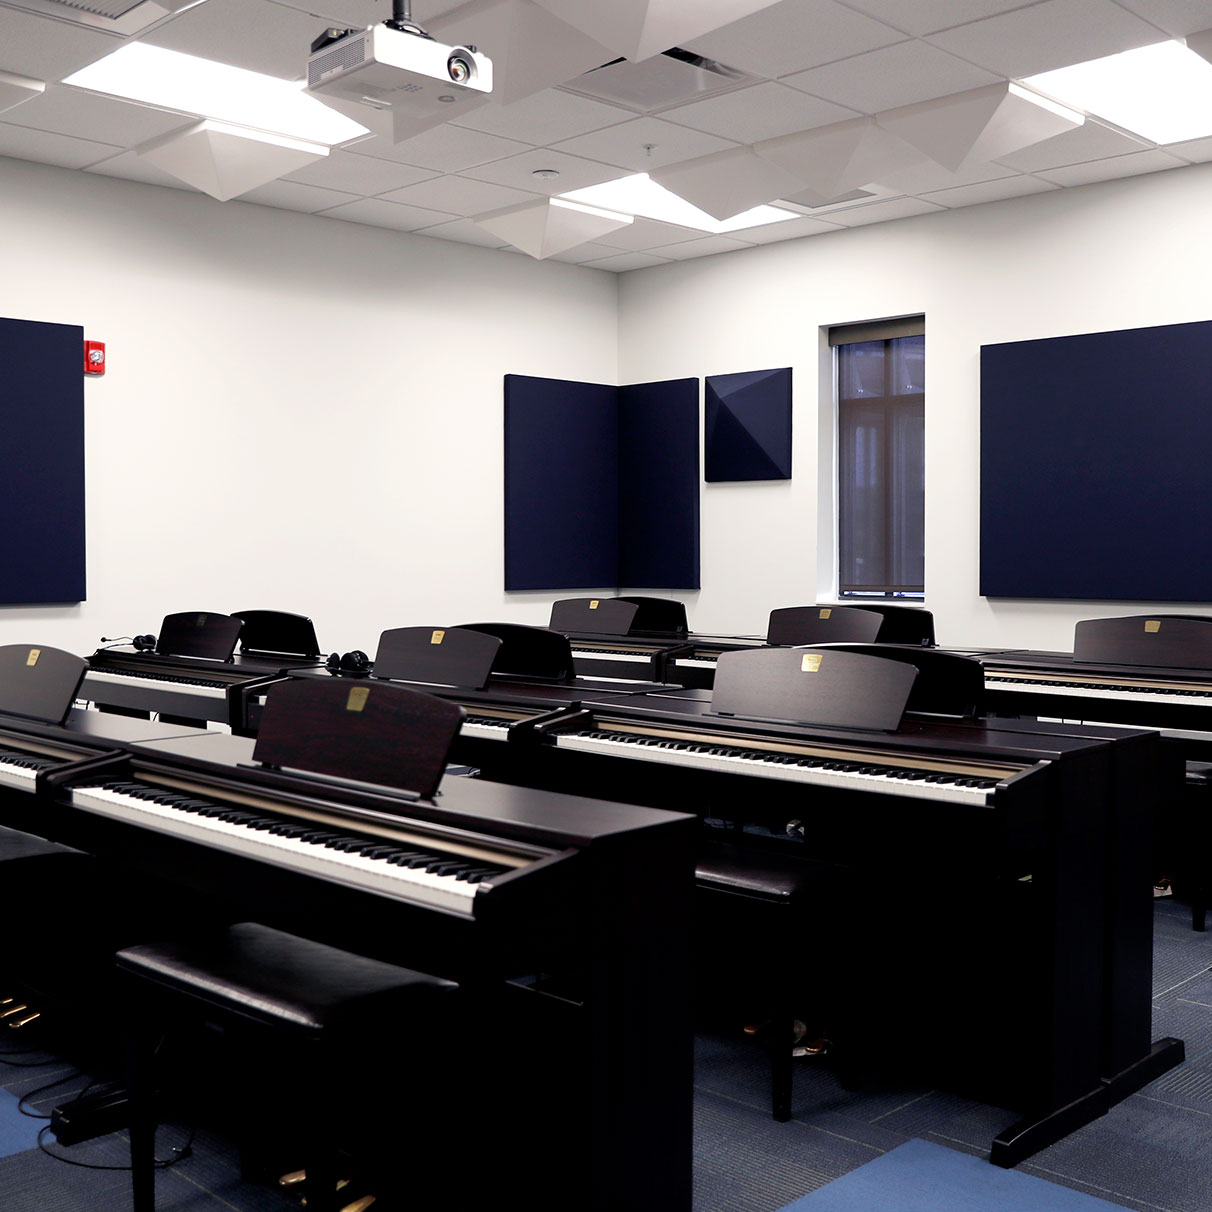 piano lab is filled with piano stations and sound proofing is on the walls